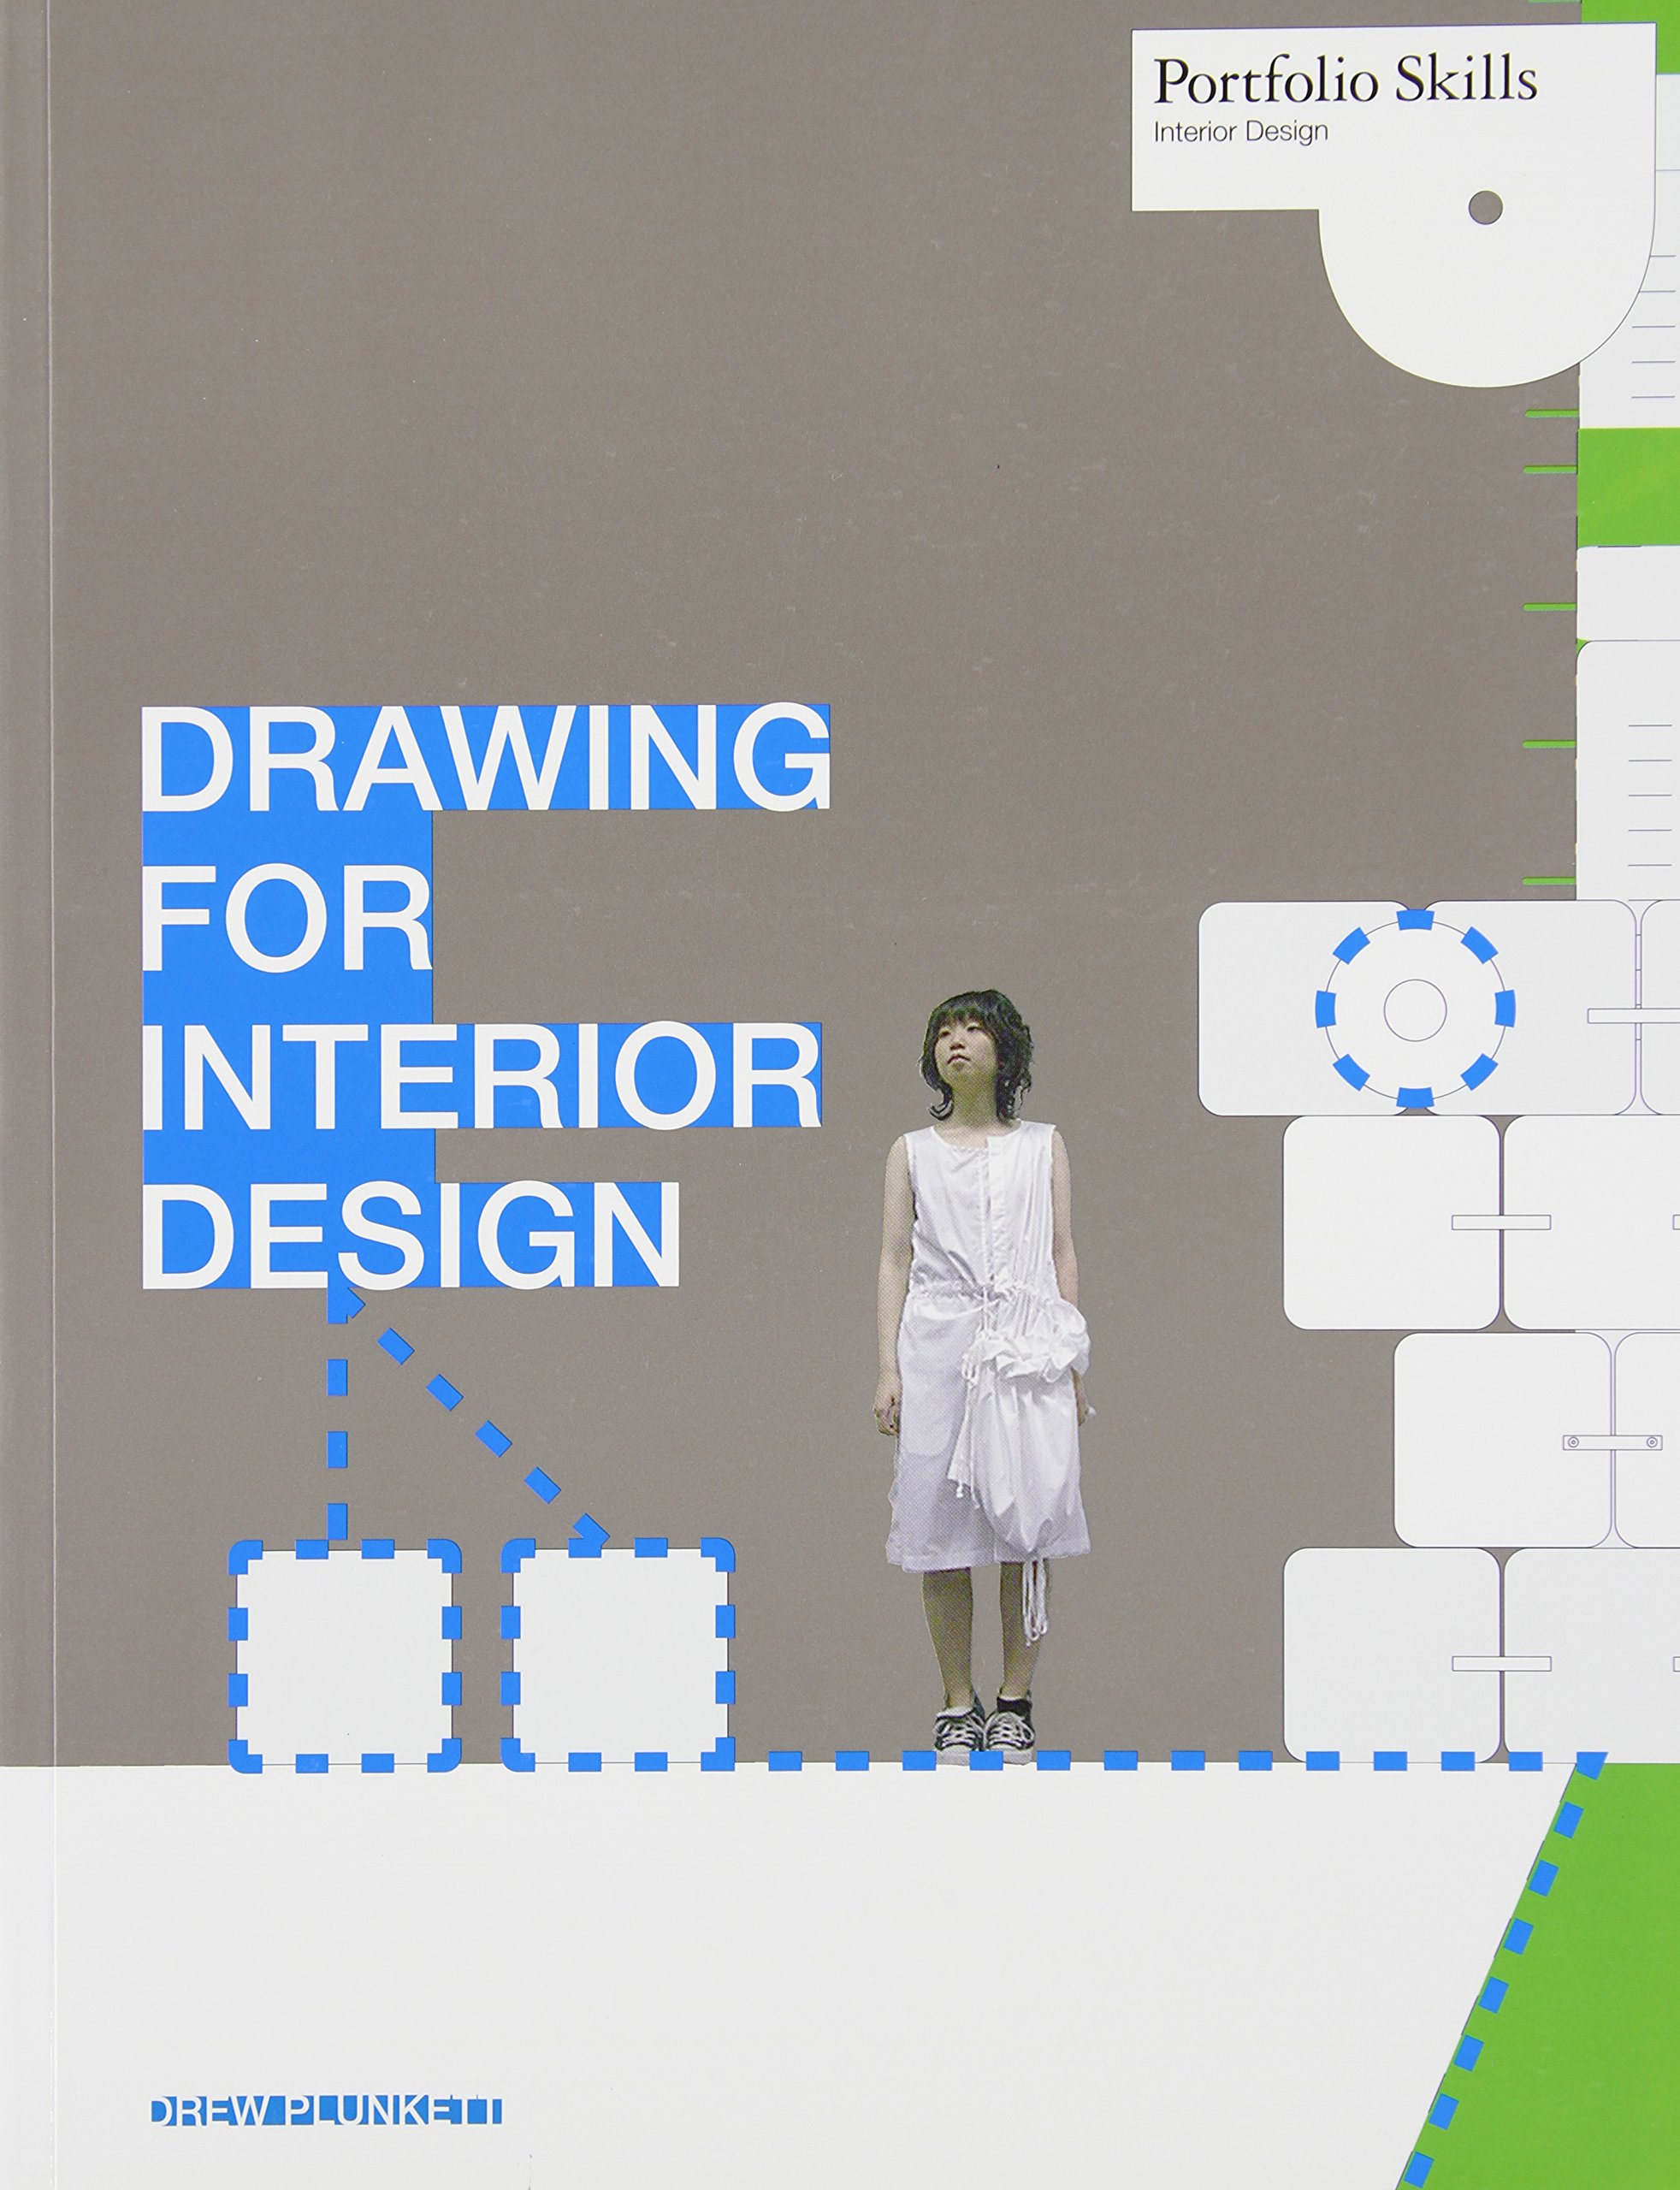 Amazoncom Drawing for Interior Design Portfolio Skills Interior